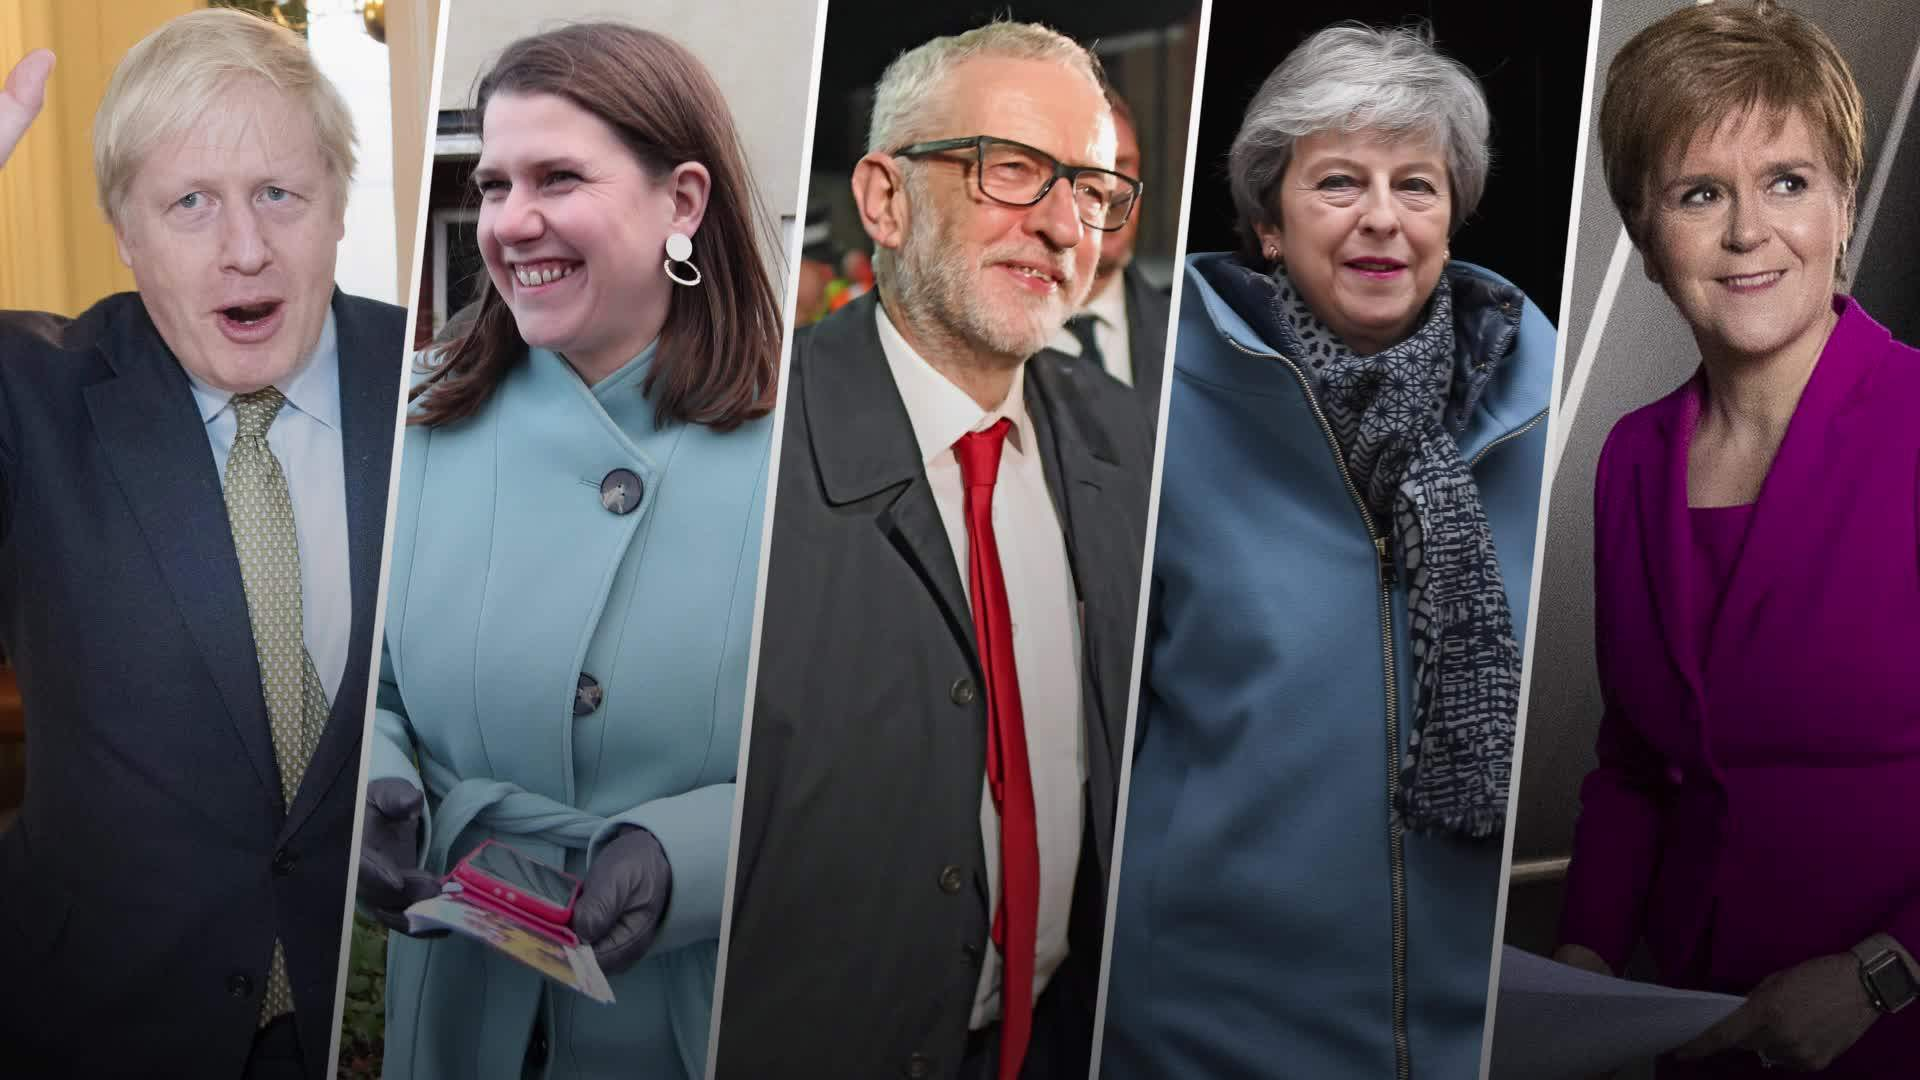 Politics in 2019: A look back at a year of ups and downs